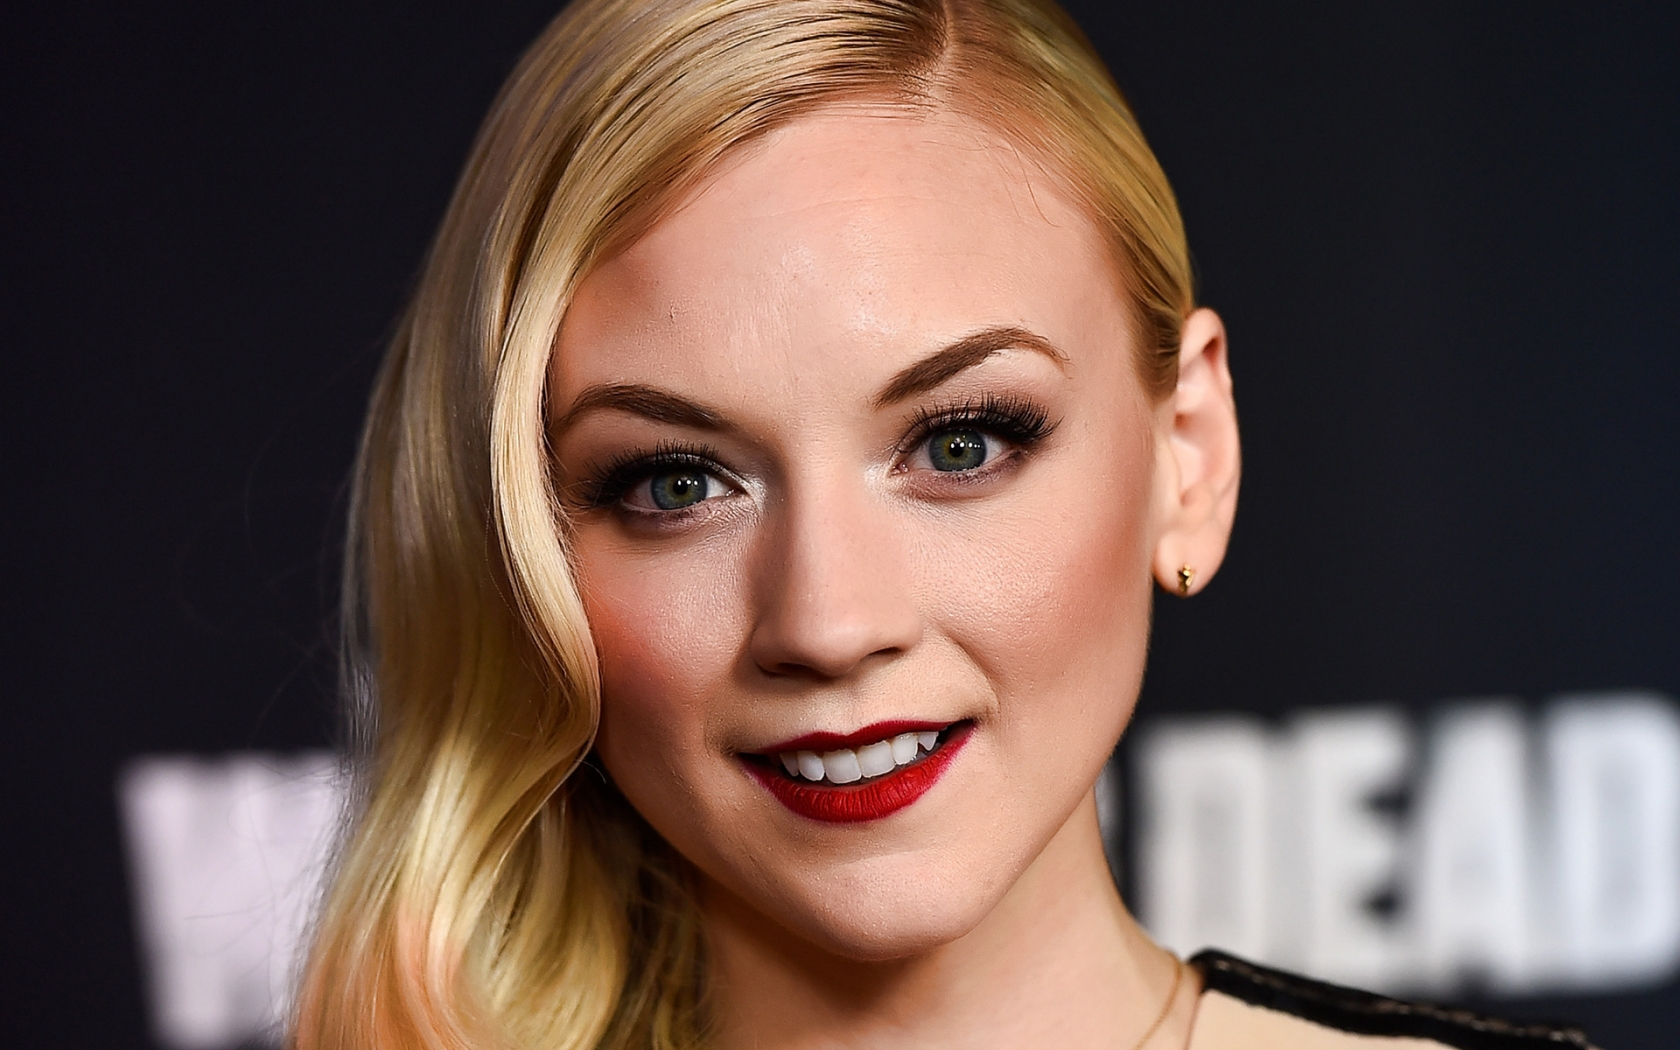 Emily Kinney Actress for 1680 x 1050 widescreen resolution